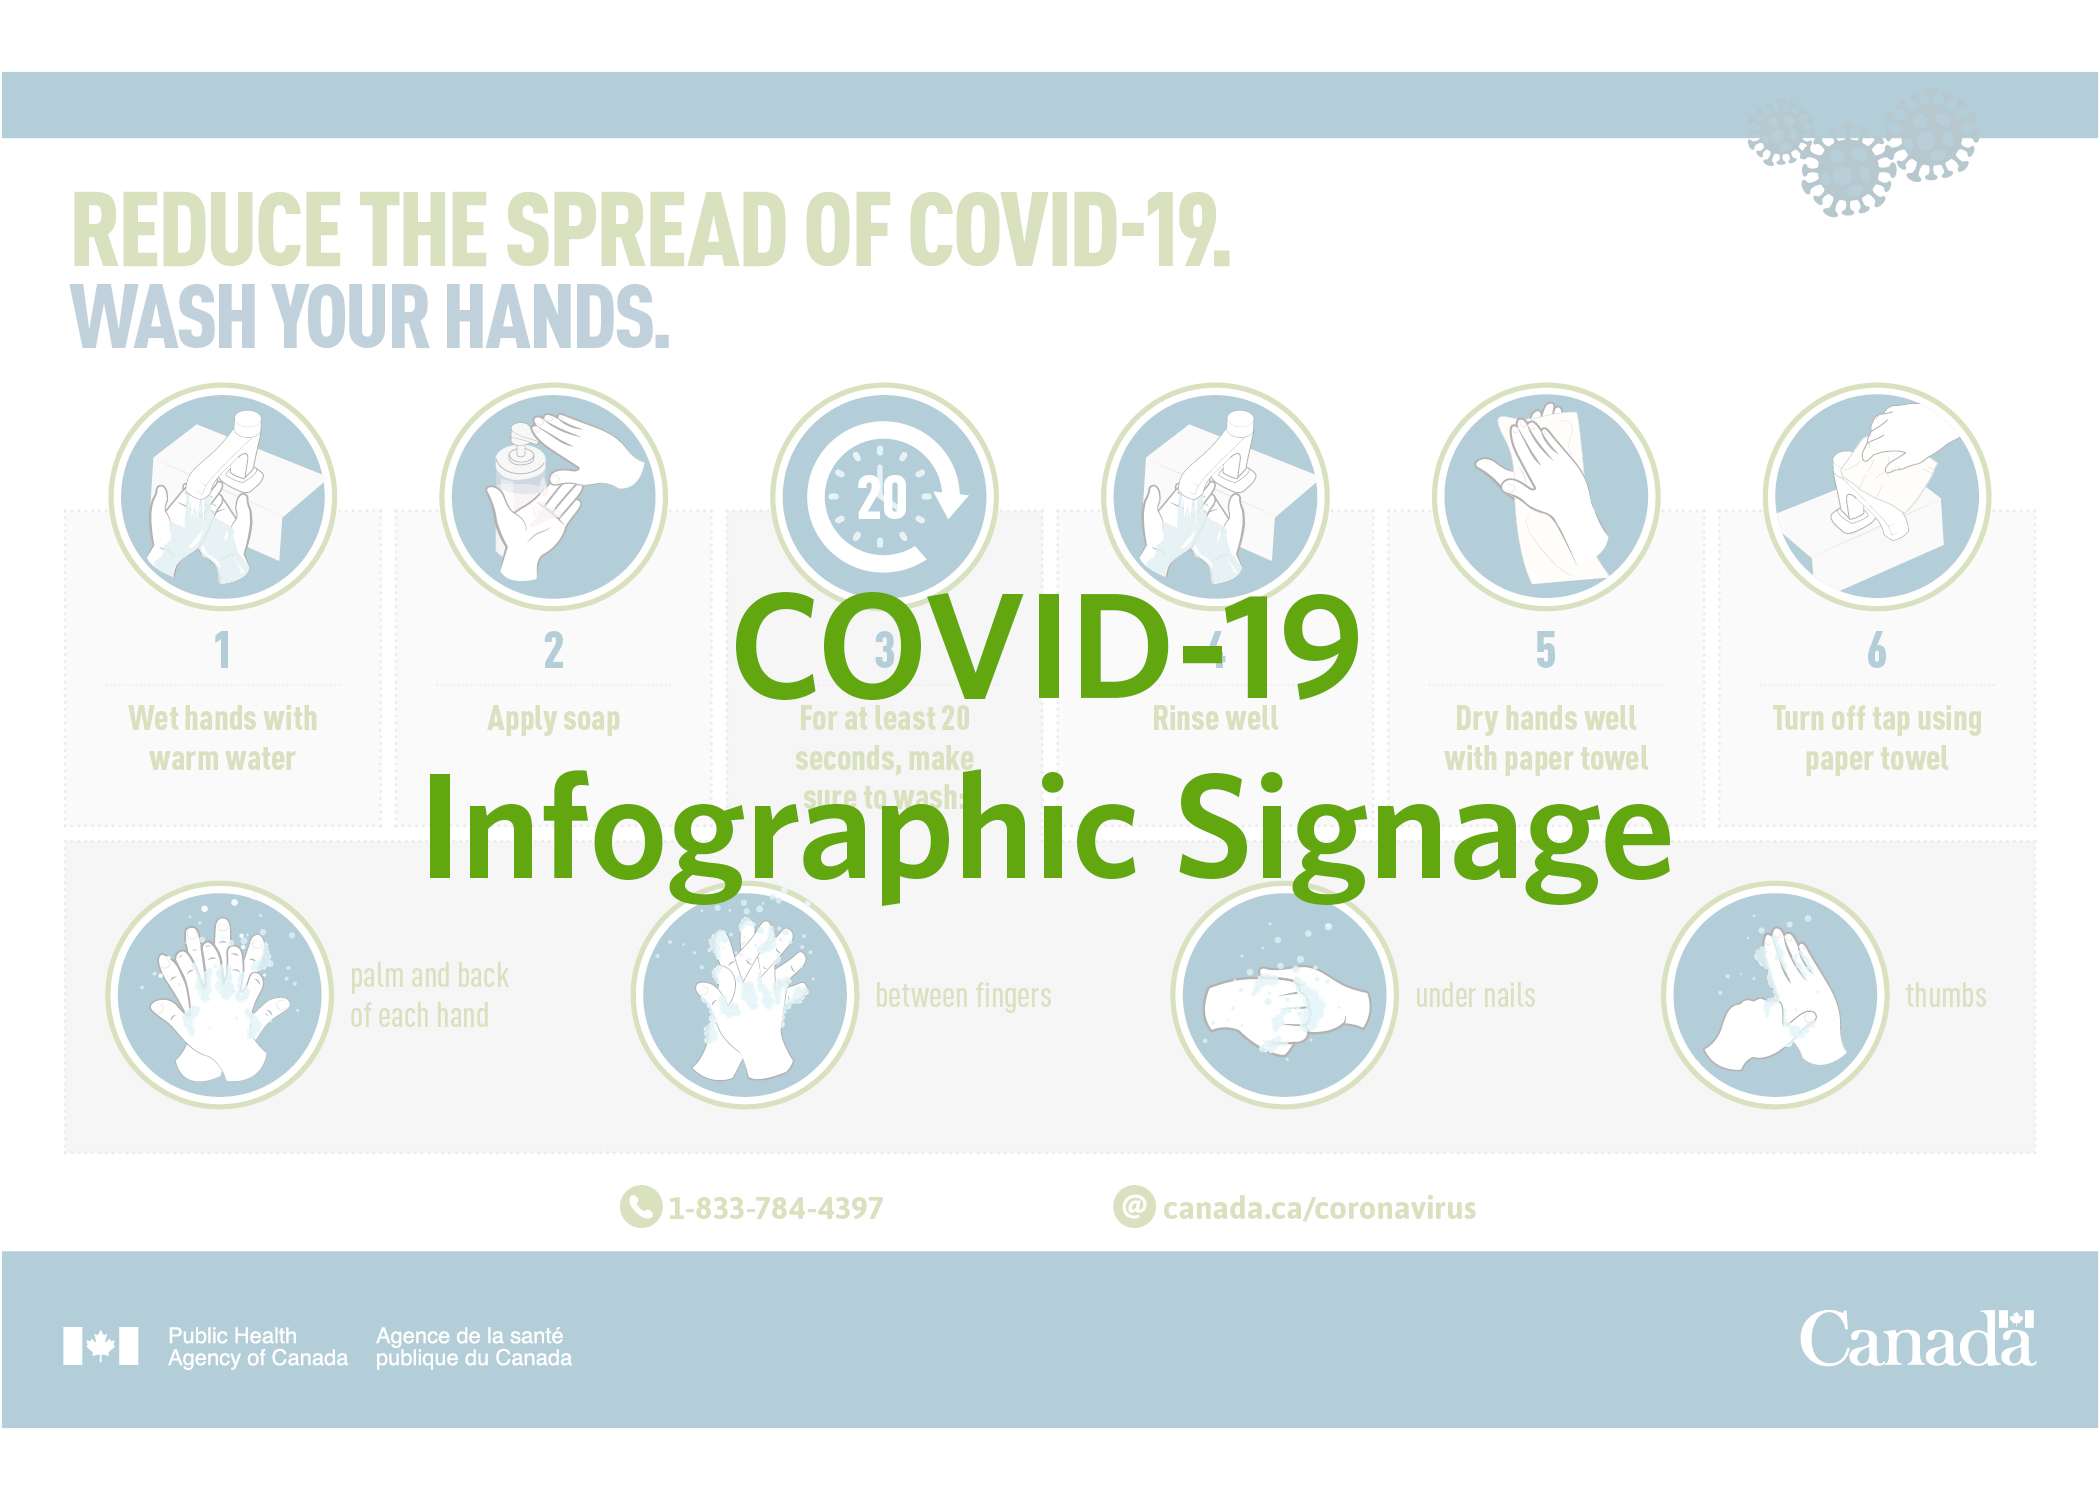 COVID-19 Infographic Signage